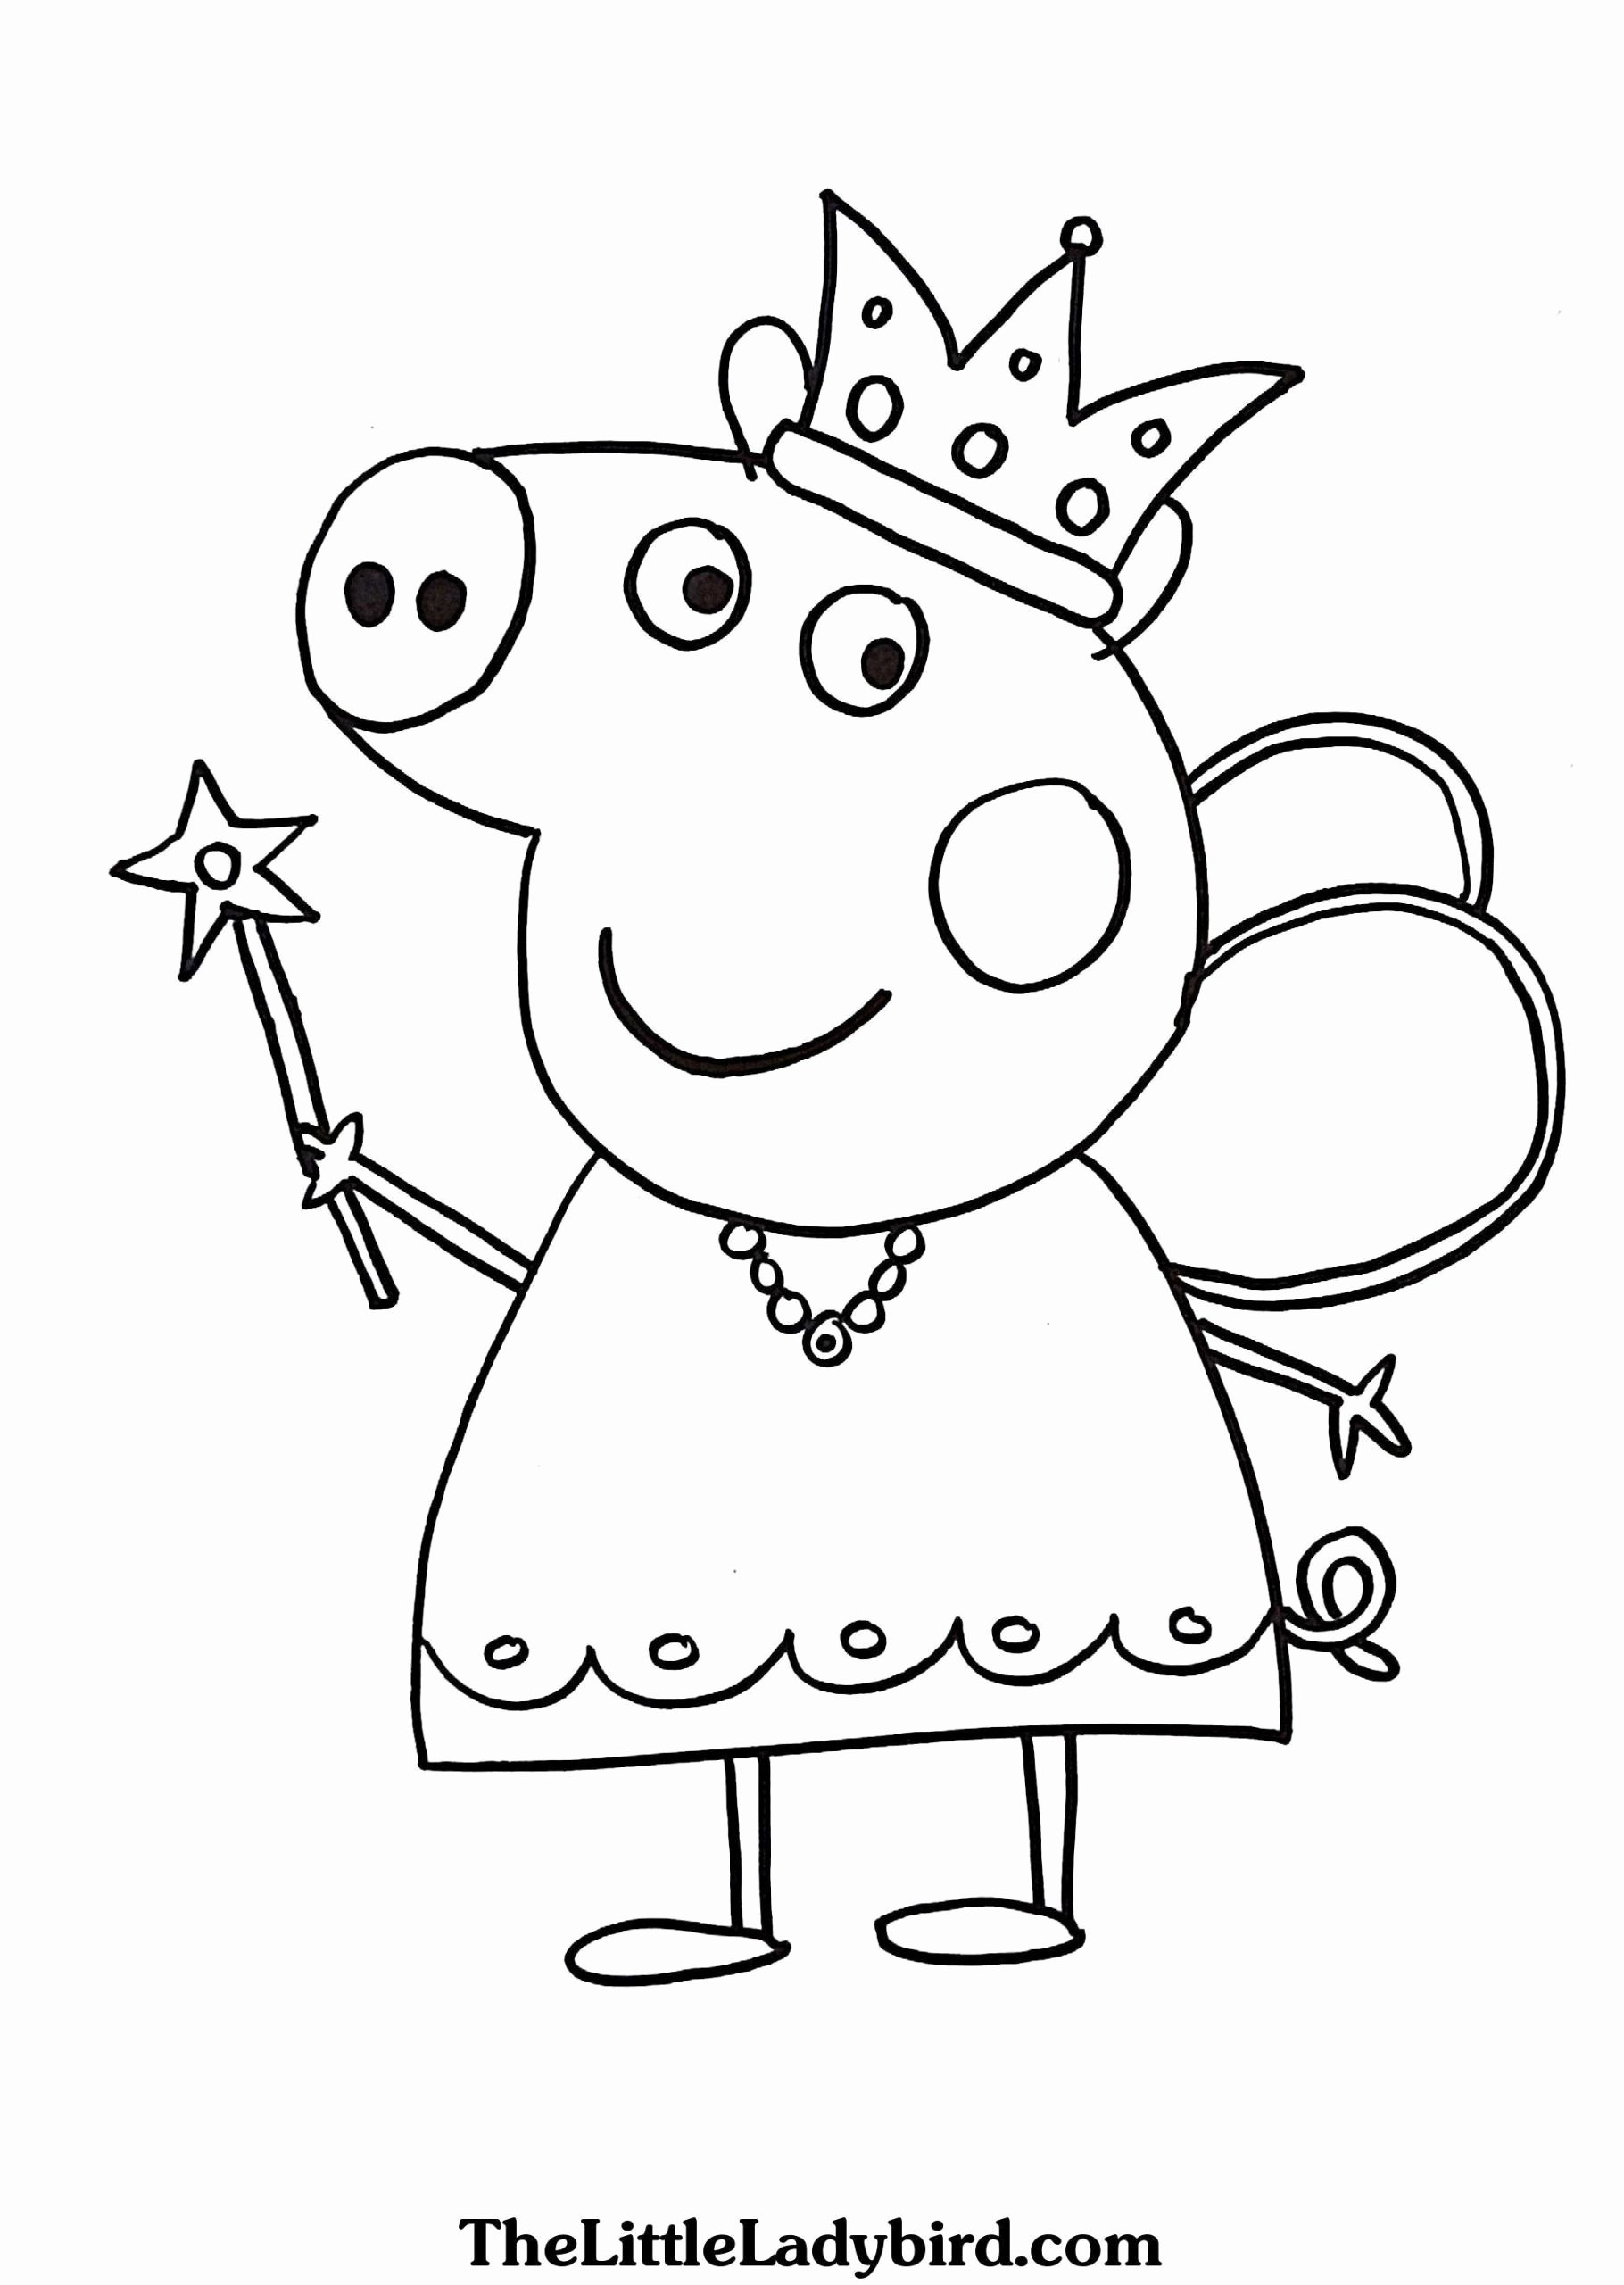 Free Printable Colouring Worksheets for Preschoolers Ideas Childrens Colouring Sheets Picture Ideas Printable Coloring